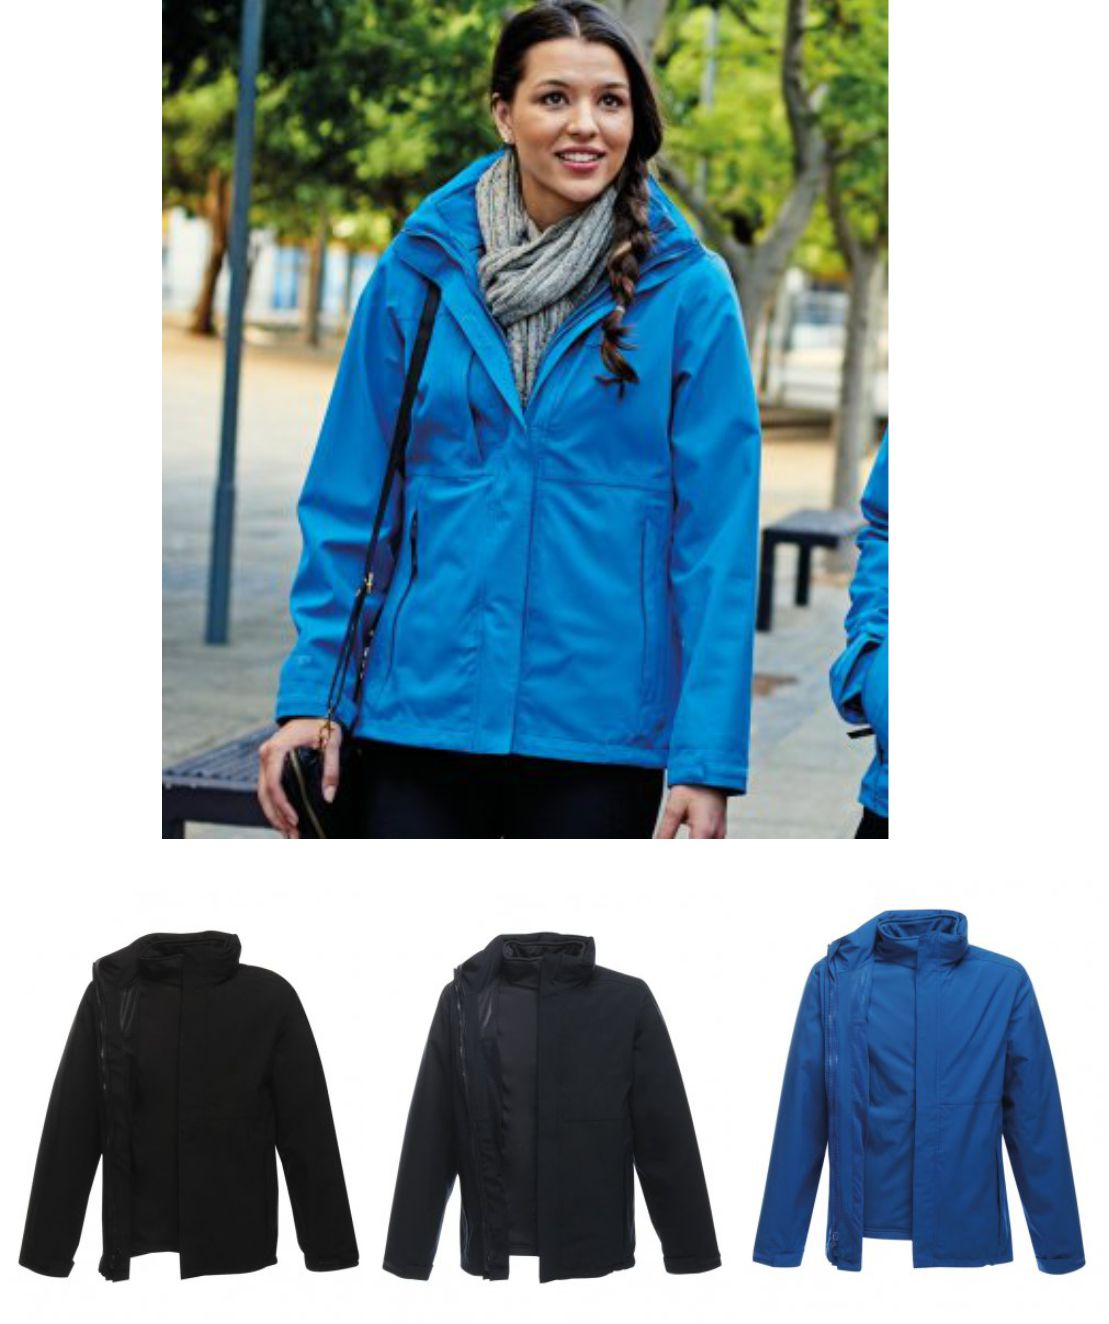 Regatta RG099 Ladies Kingsley 3 in 1 jacket